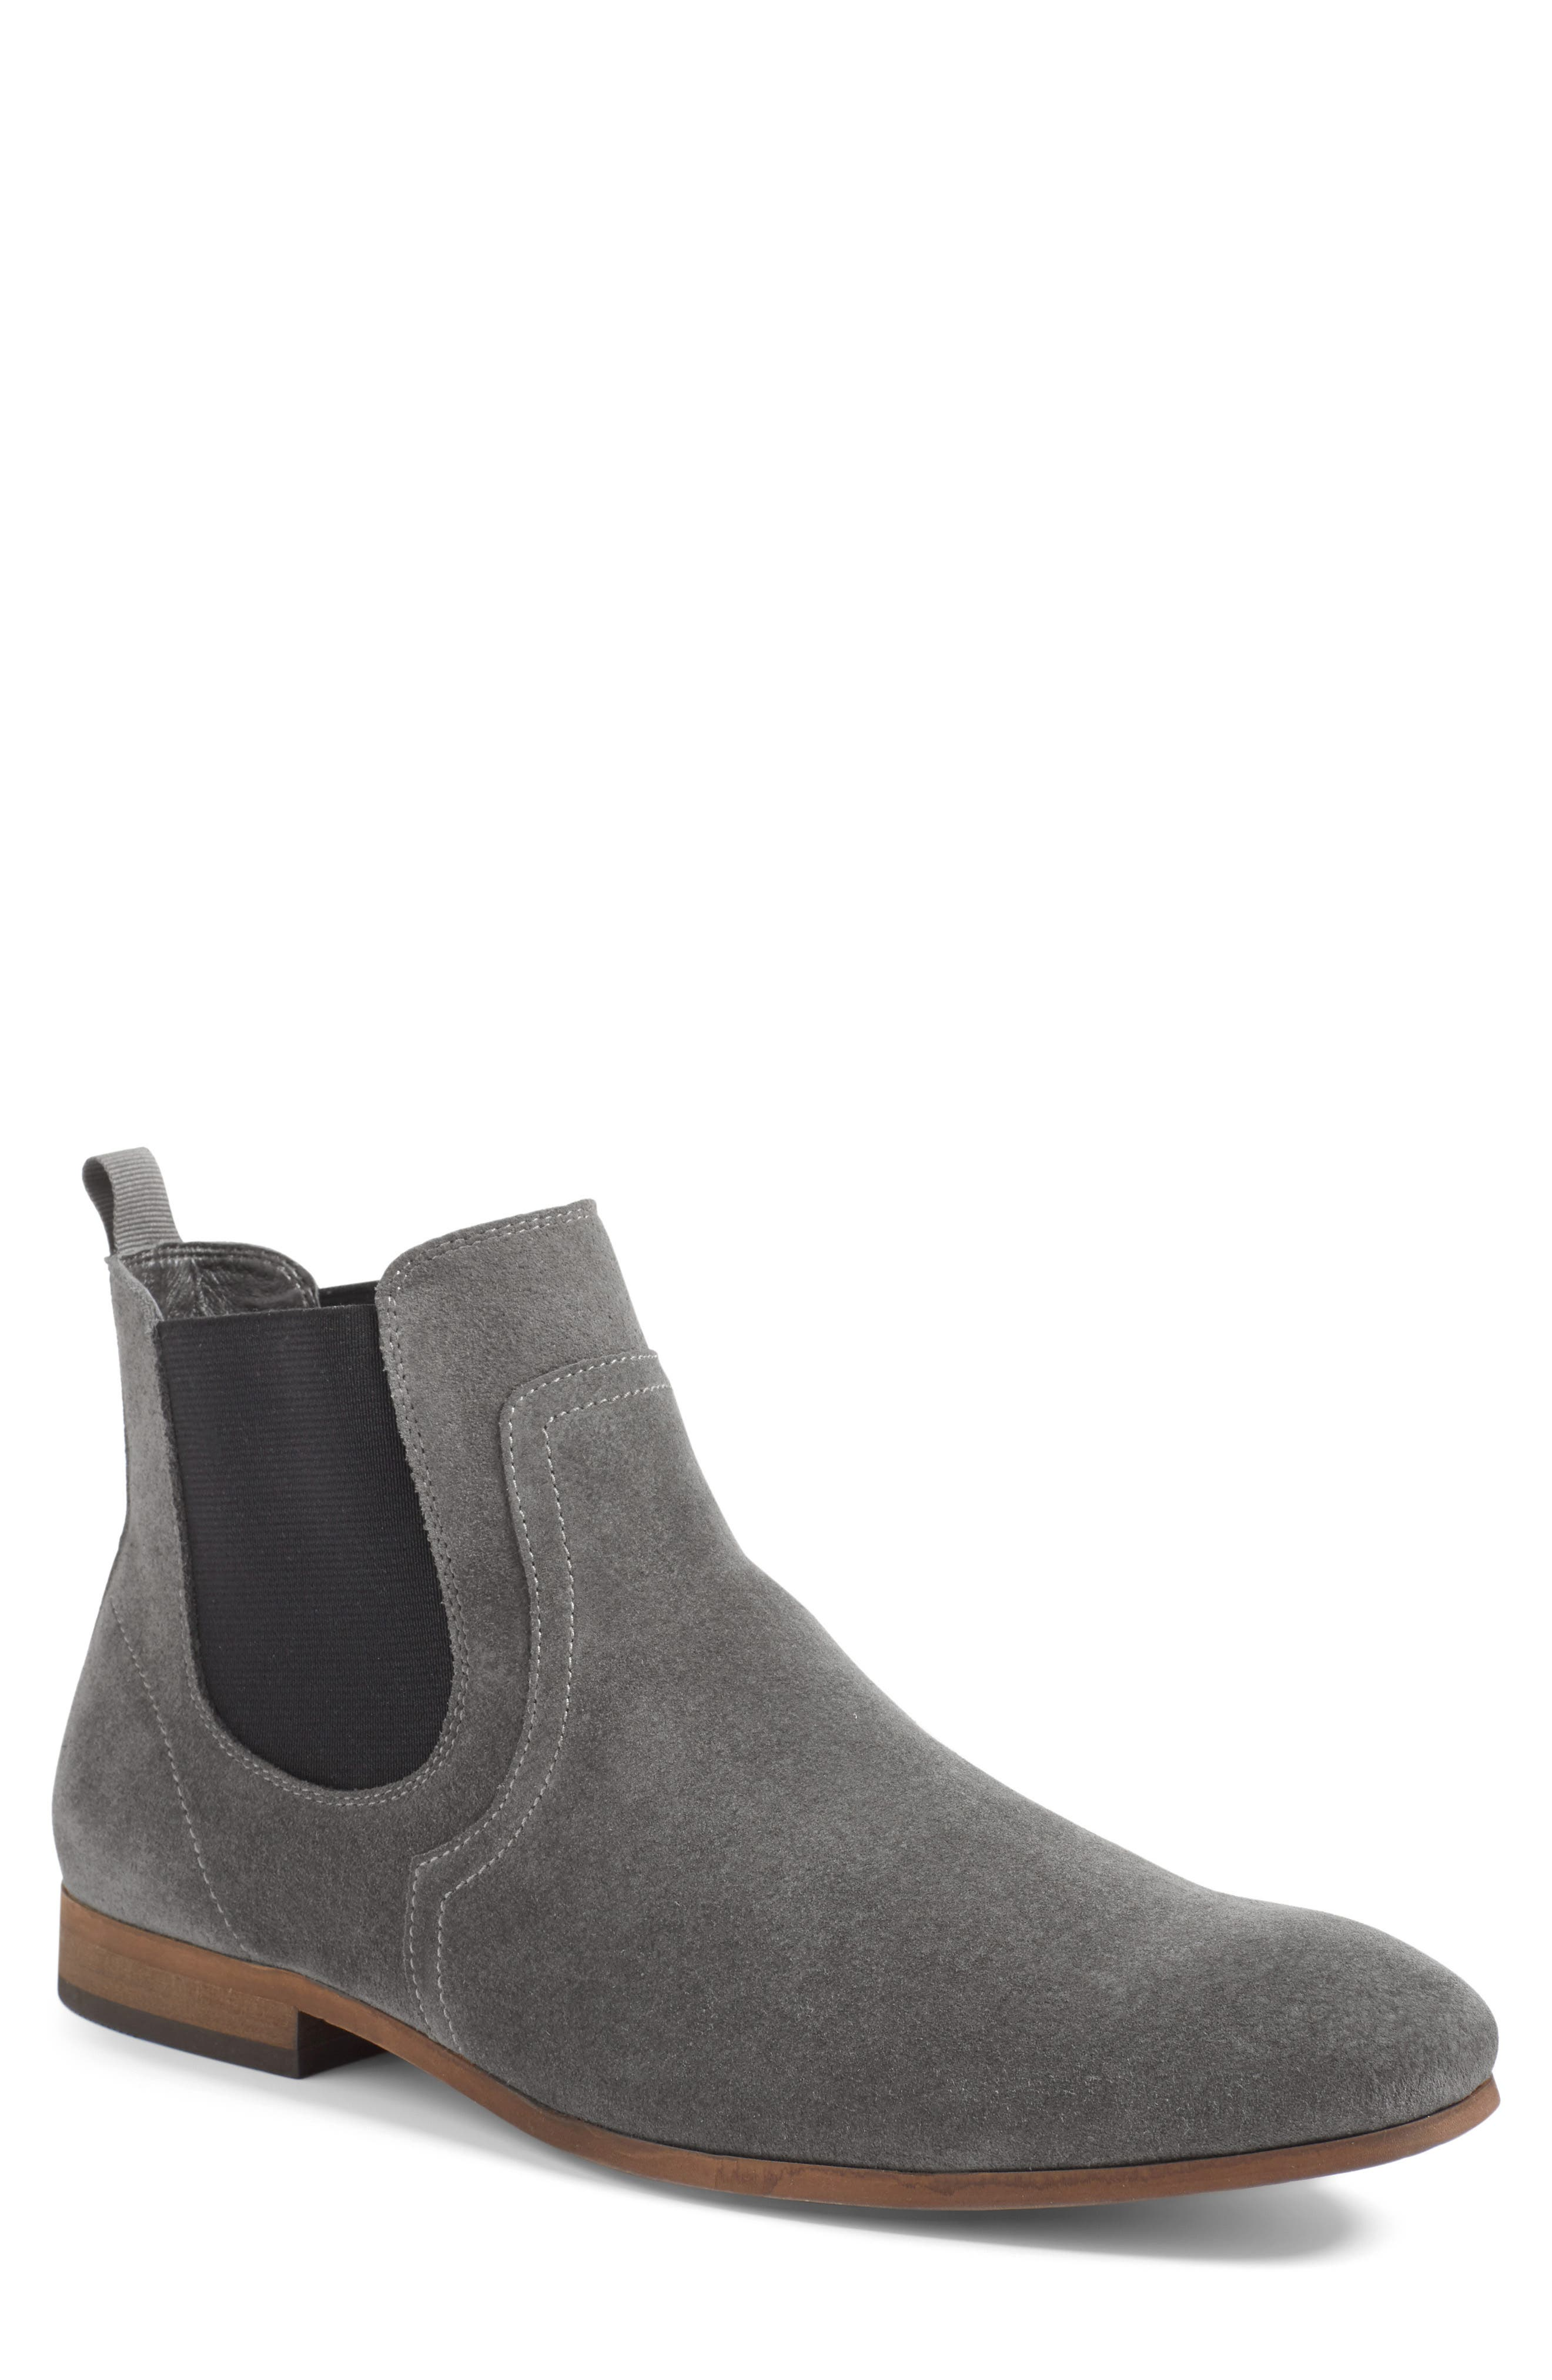 Brysen Chelsea Boot,                             Alternate thumbnail 14, color,